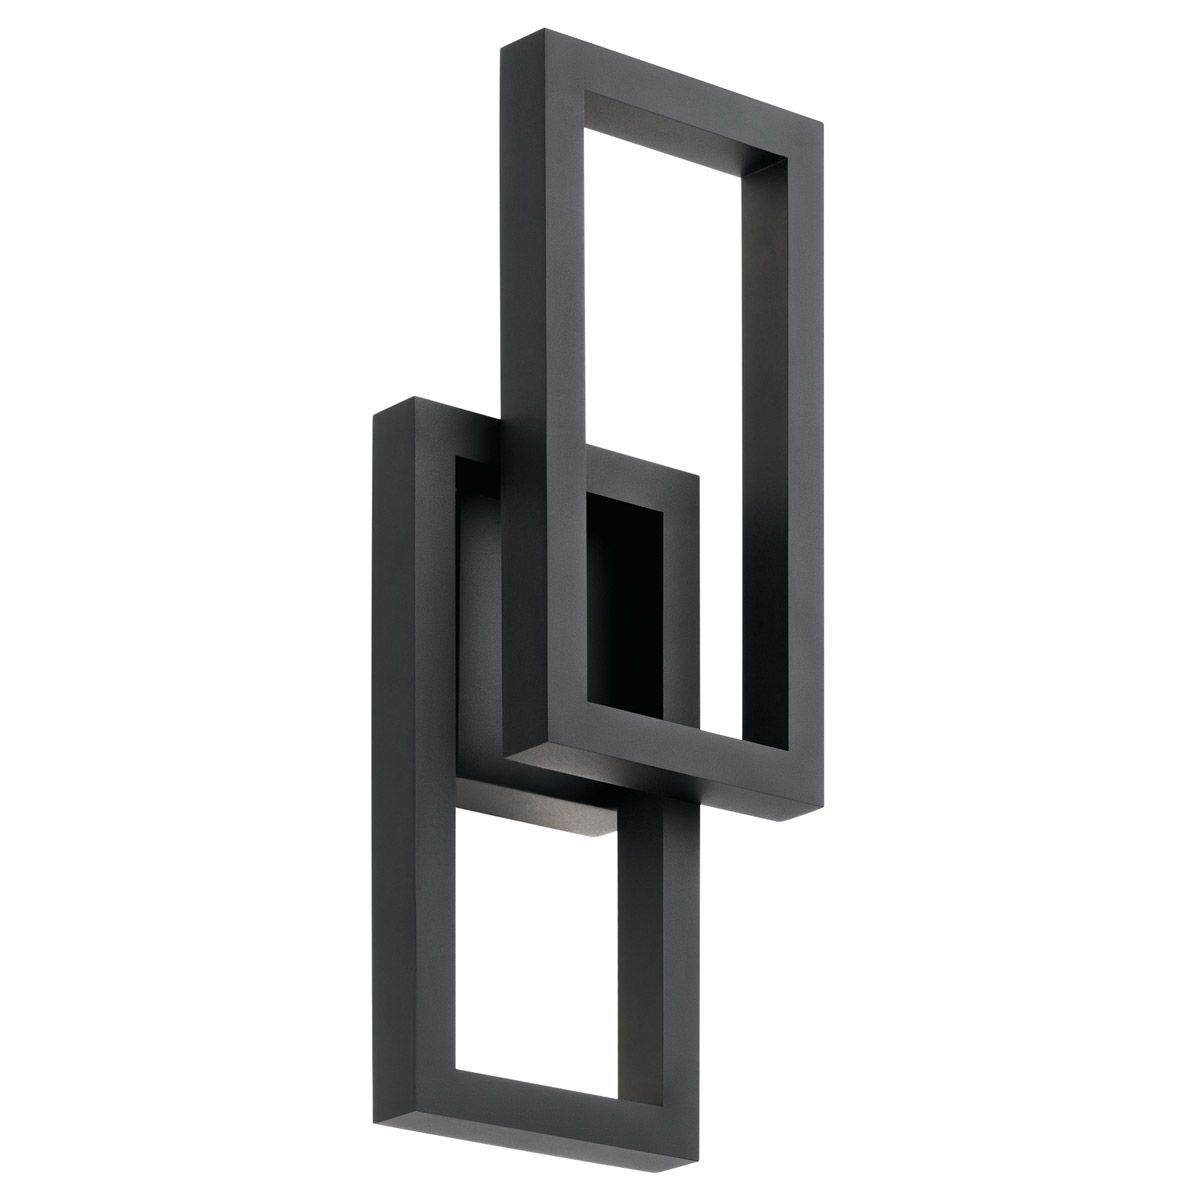 Kichler Rettangolo 19 Outdoor Wall Sconce In Textured Black Tap To Expand